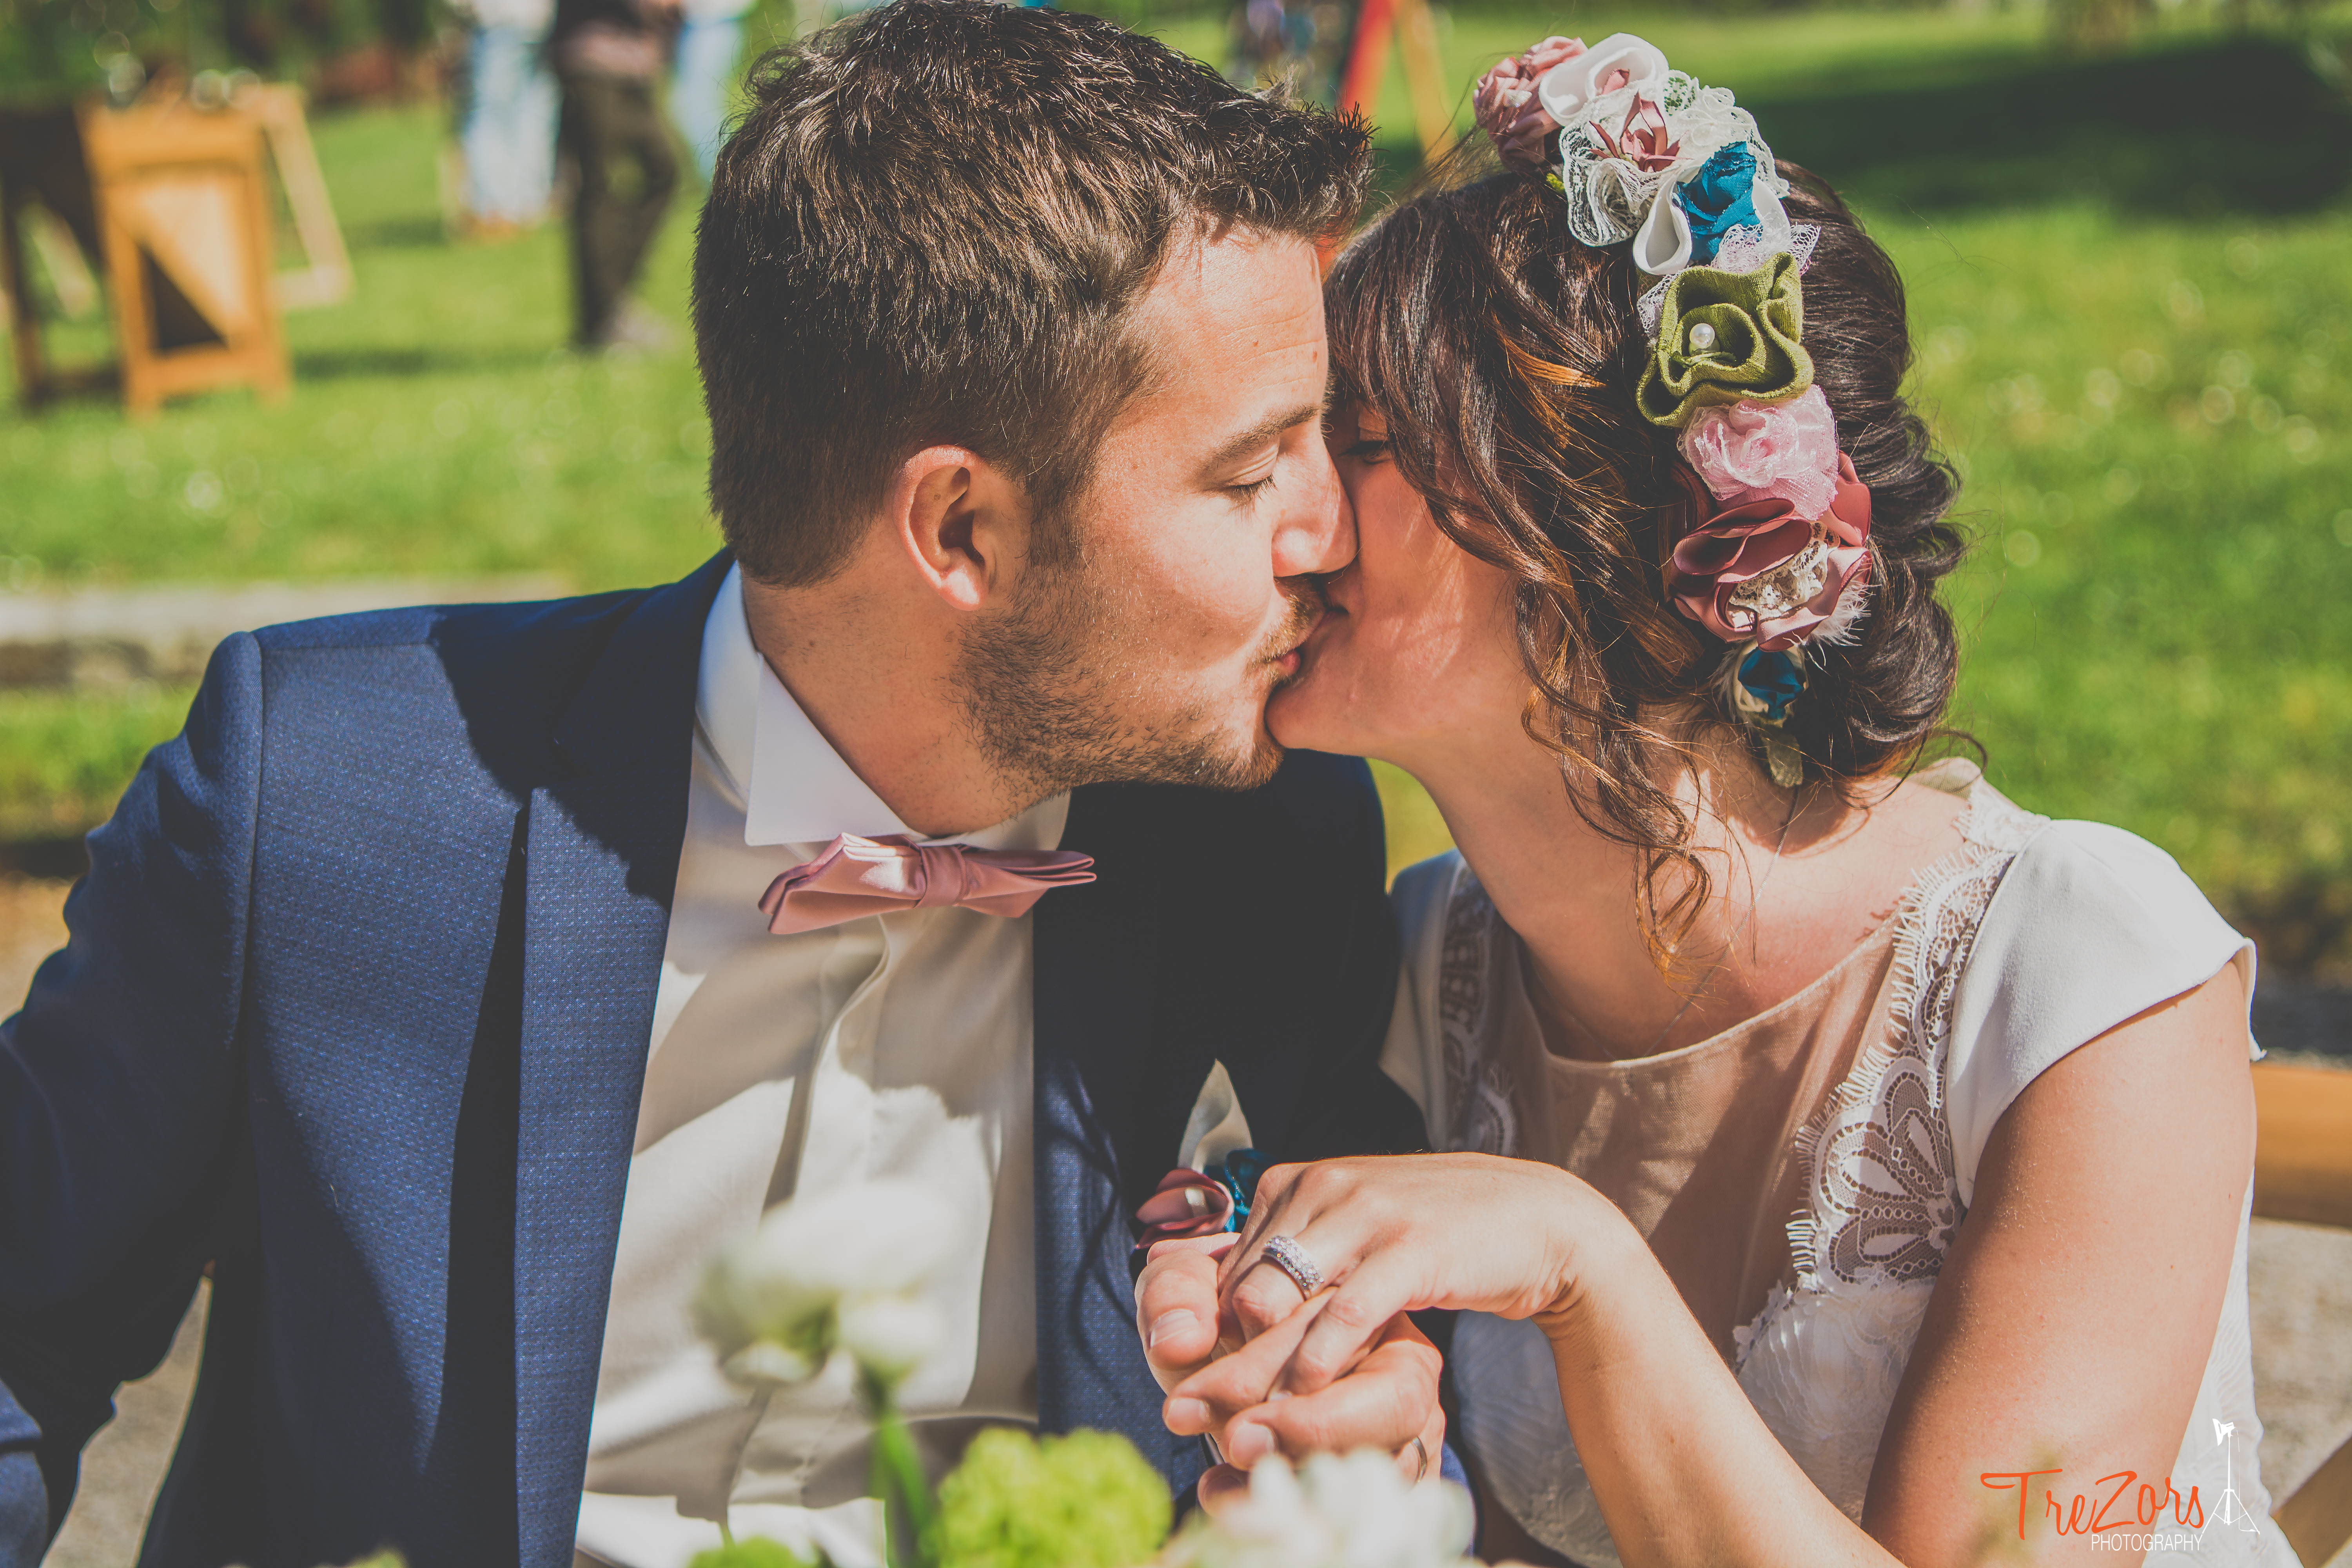 trezors-photography-photographe-professionnel-mariage-inspiration-romantic-chic-made-in-Tarn-186